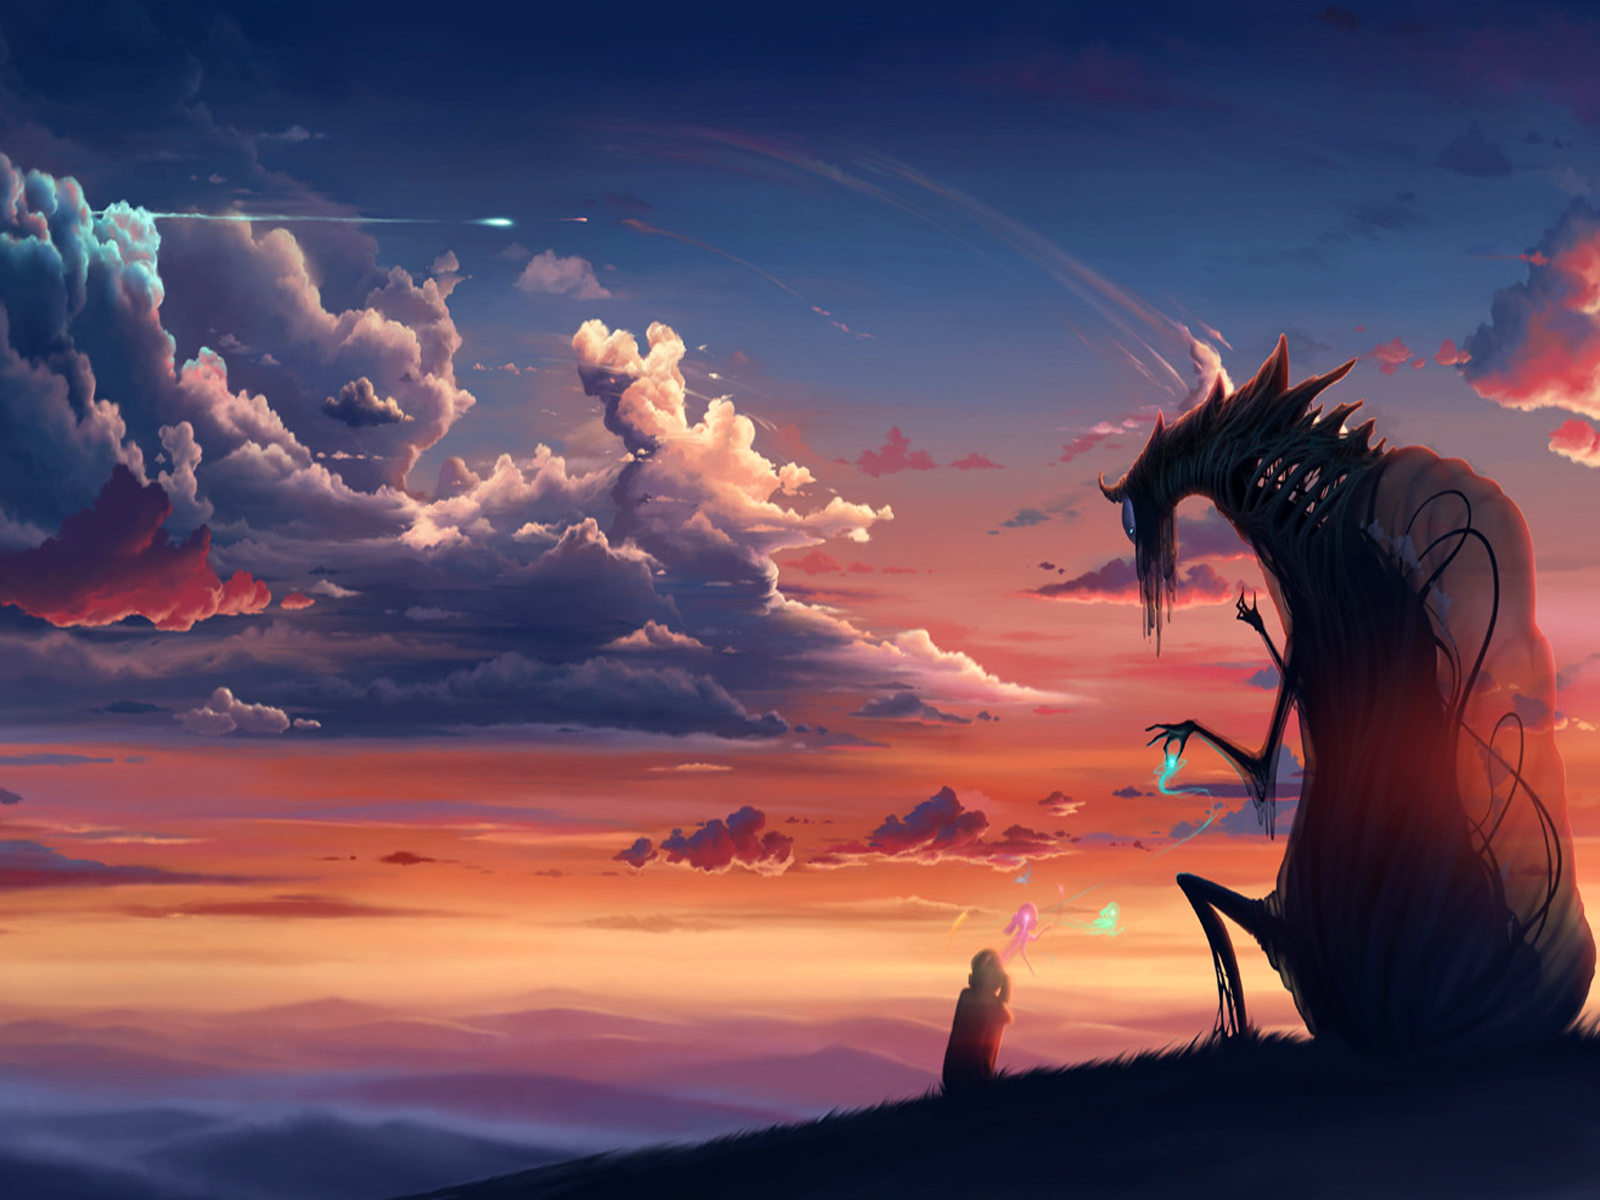 Fantasy - Dragon  - Sky - Clouds - Sunset Wallpaper